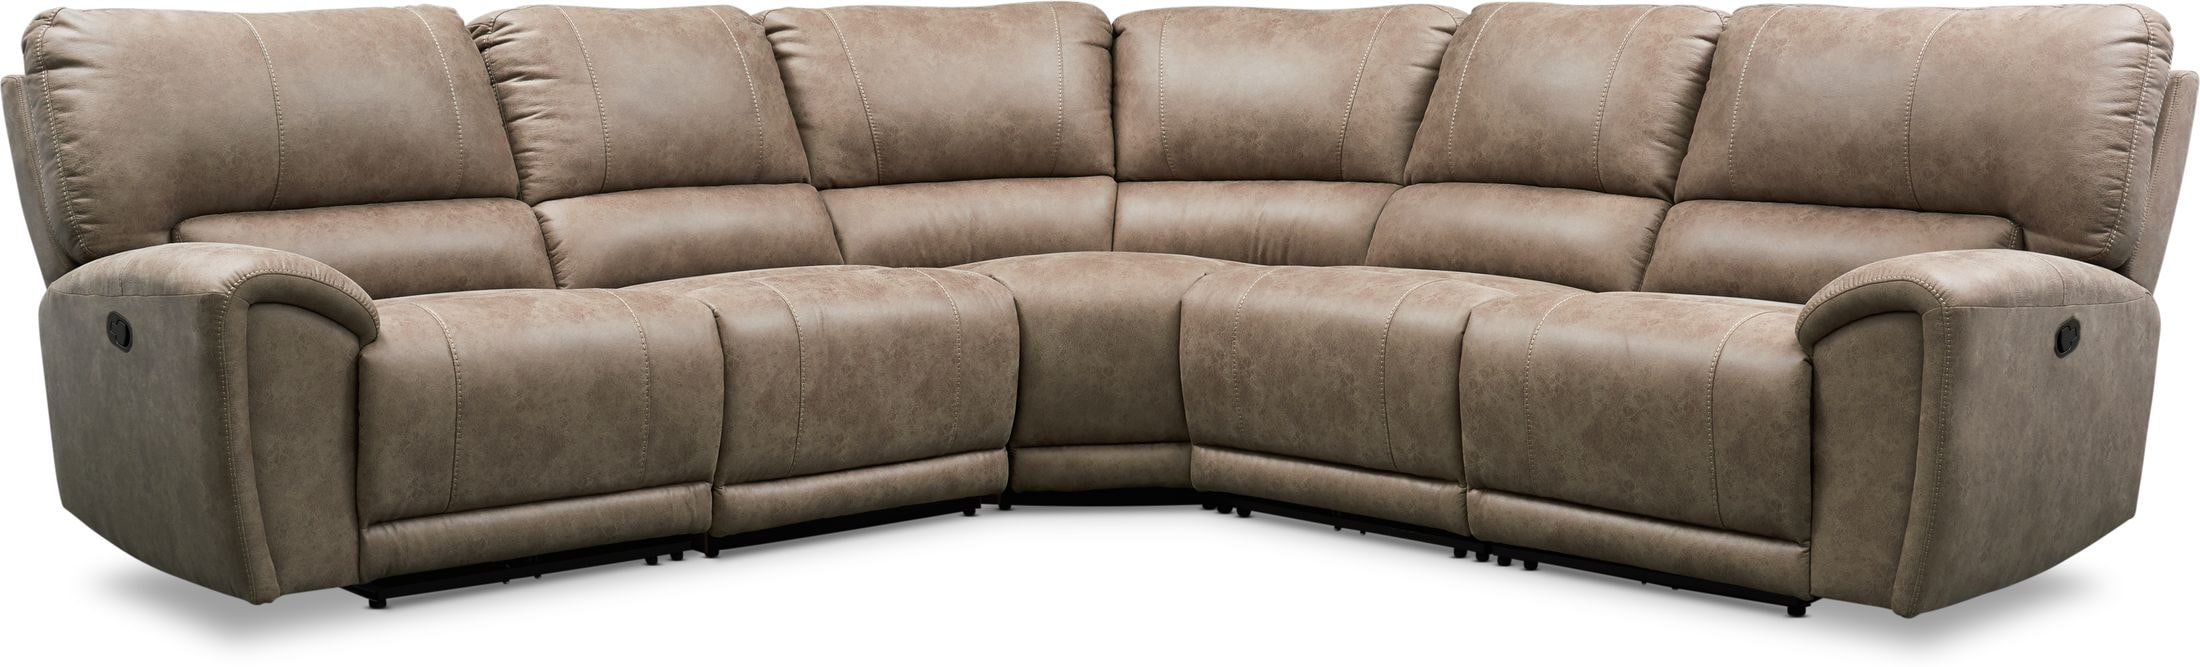 Living Room Furniture - Gallant 5-Piece Manual Reclining Sectional with 3 Reclining Seats